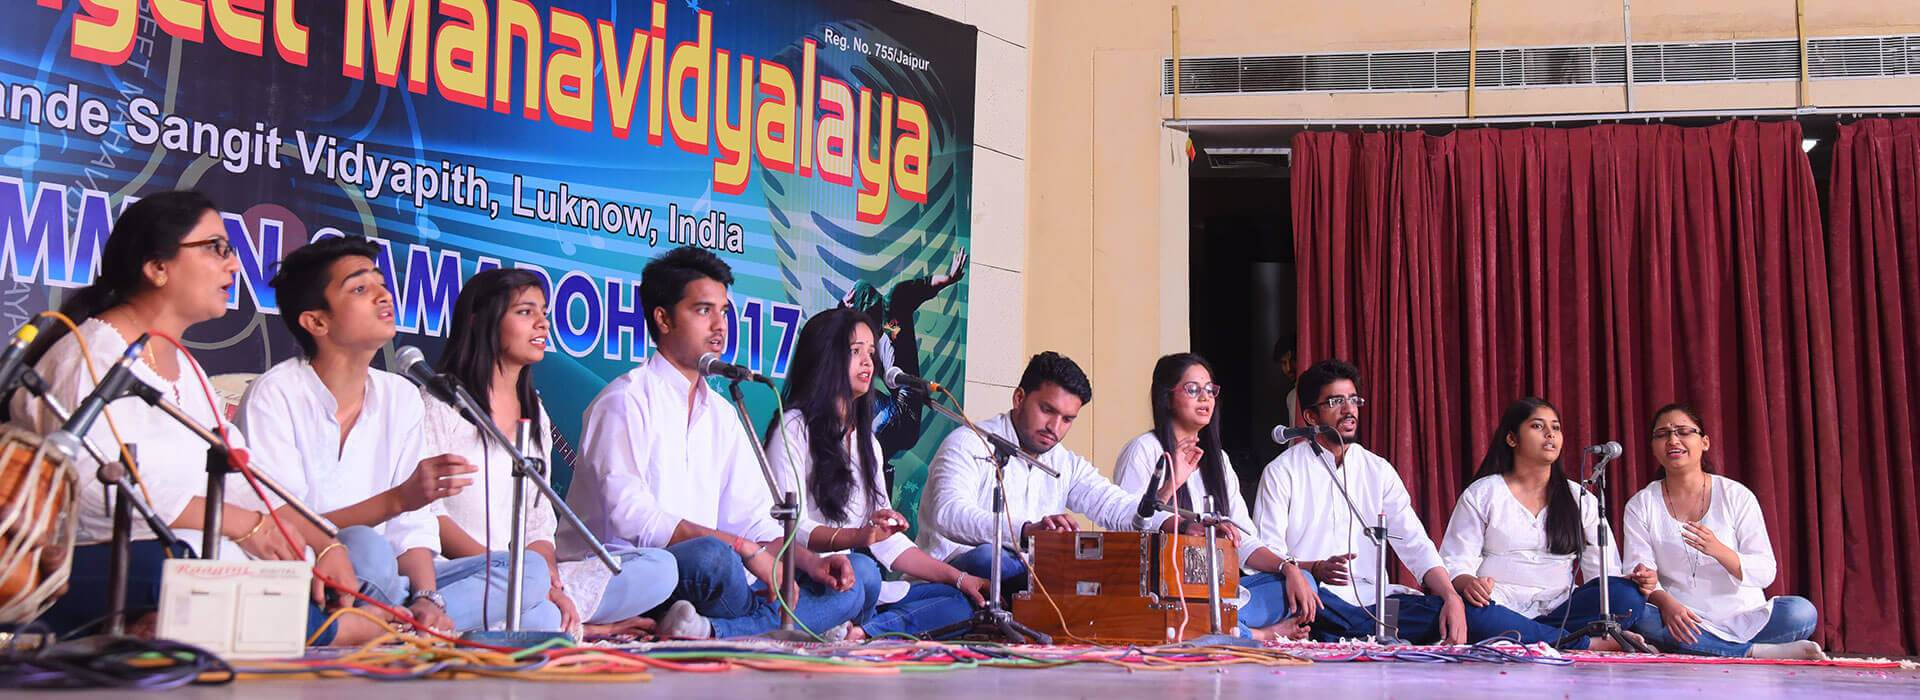 Event Program -Jaipur Sangeet Mahavidyalayaimage Jaipur Music Classes For Guitar